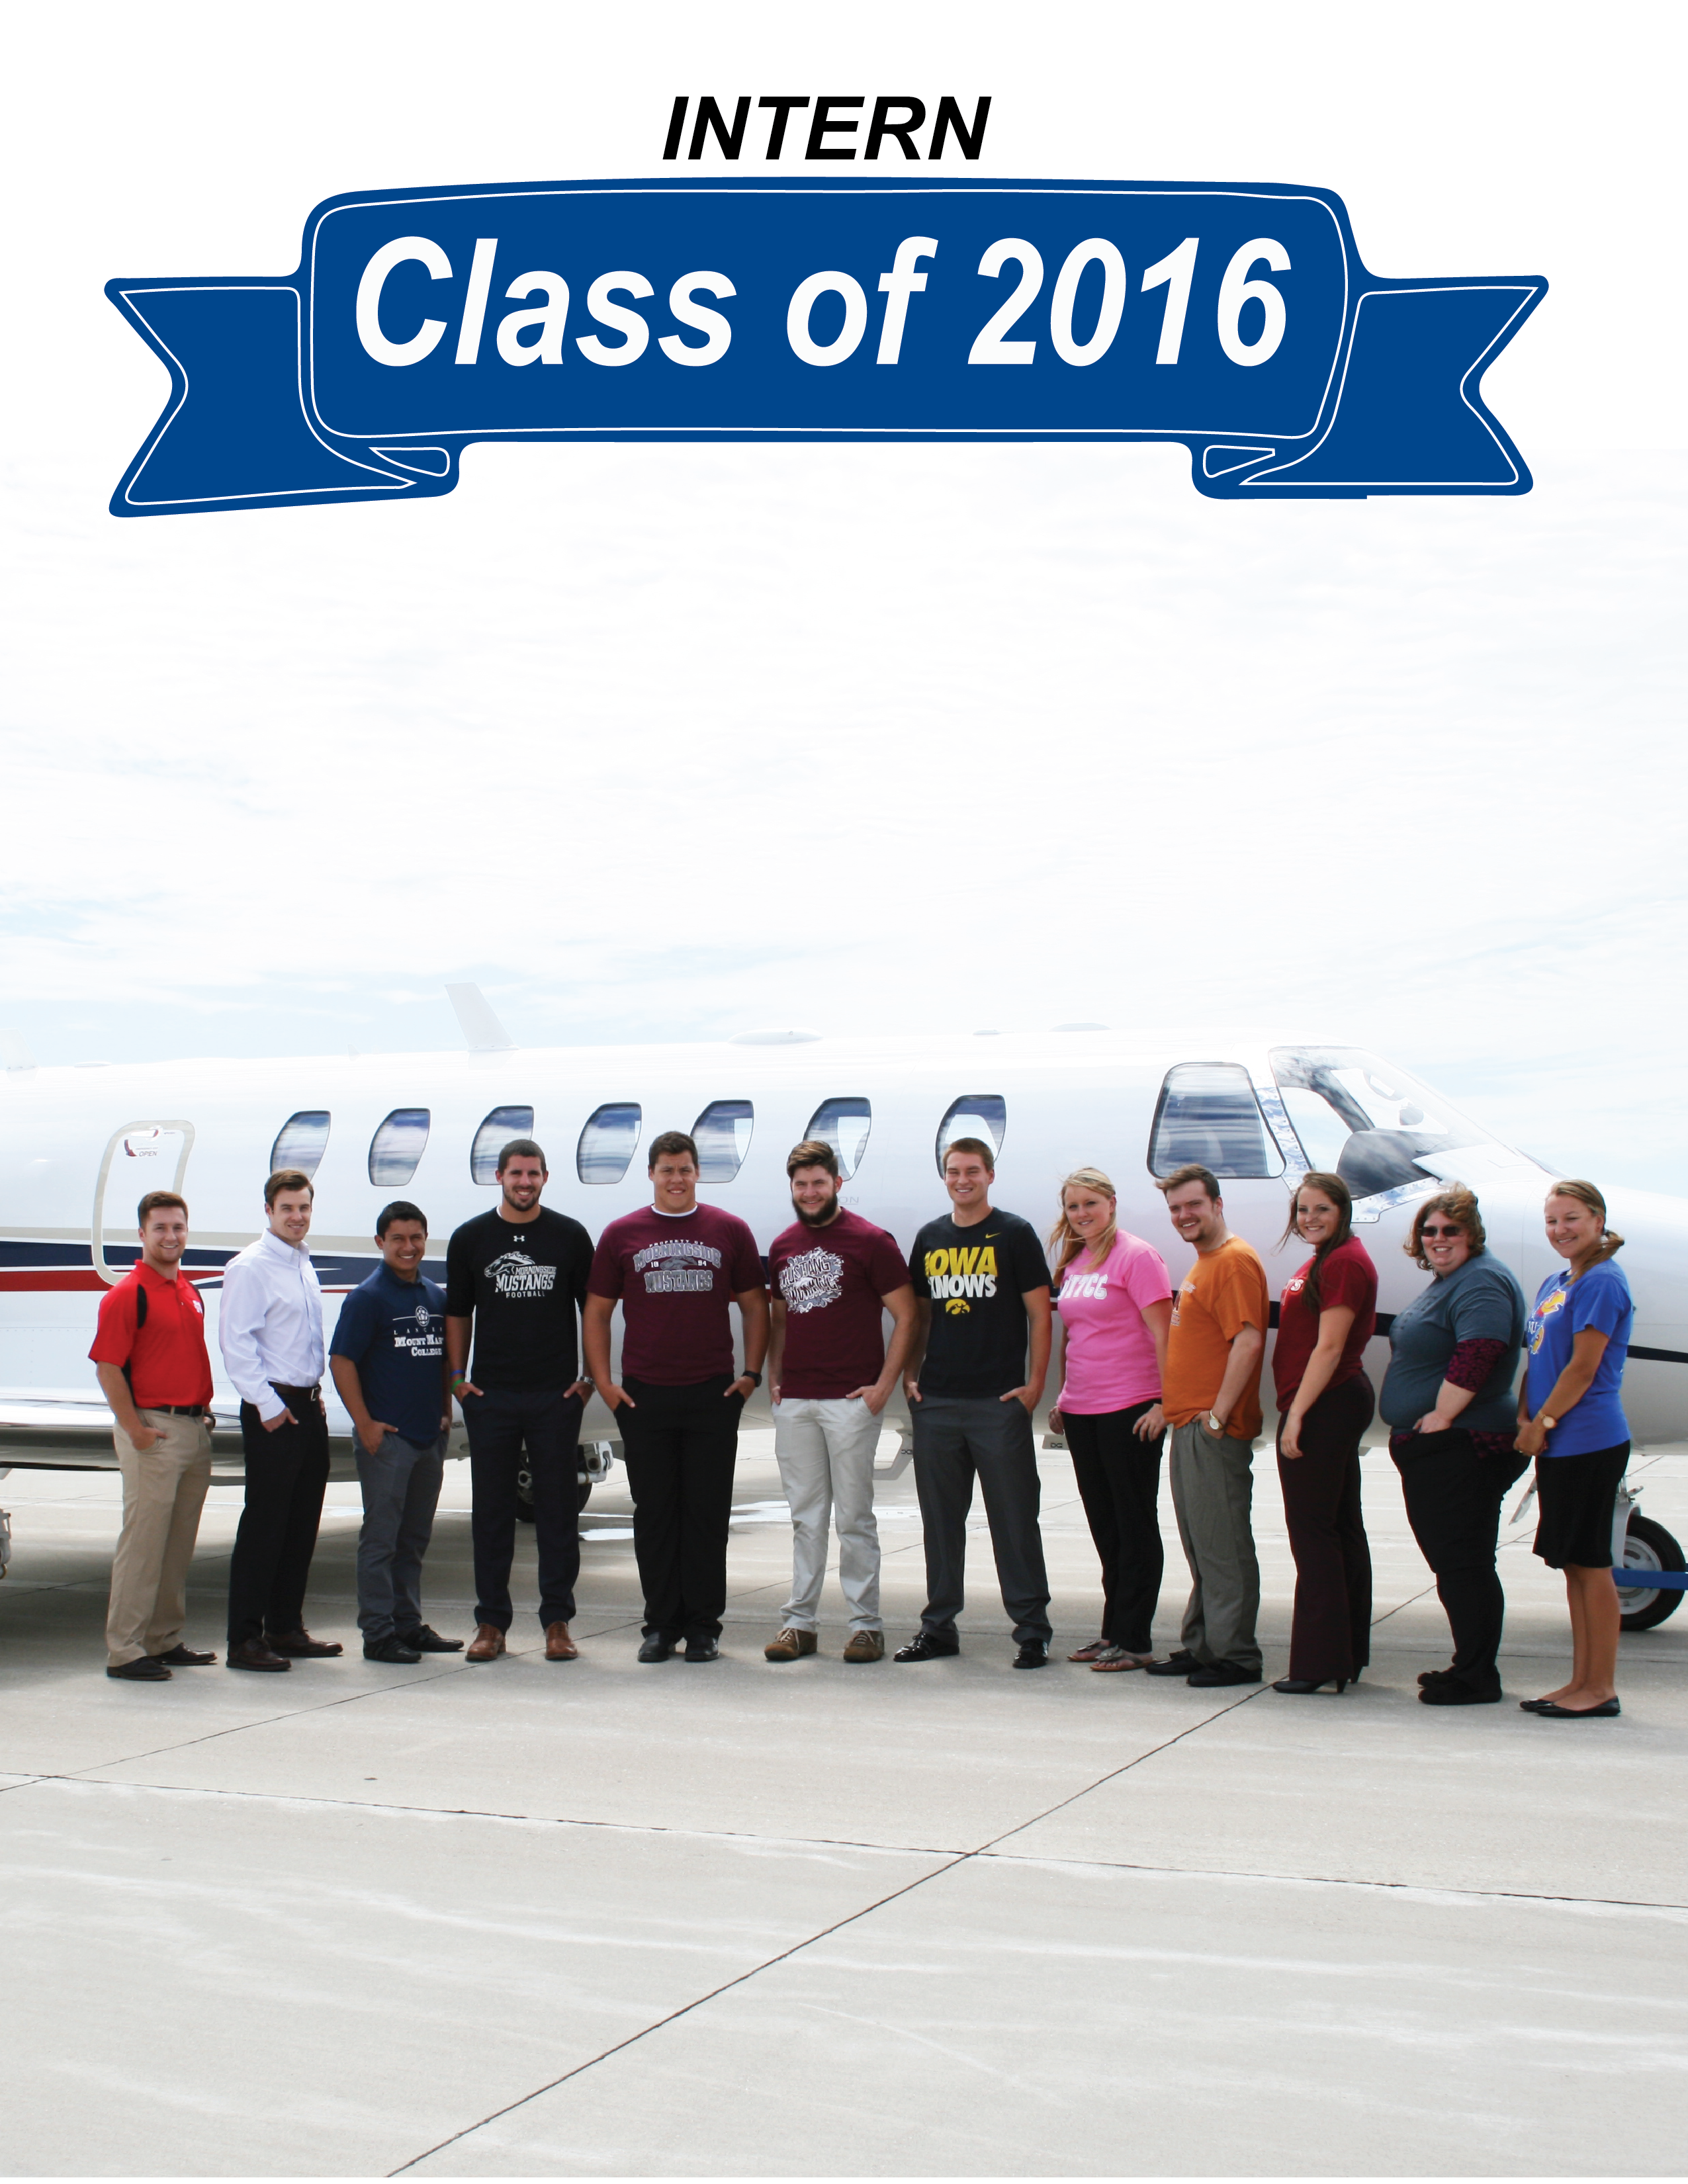 Great West Casualty Company Intern Class 2016